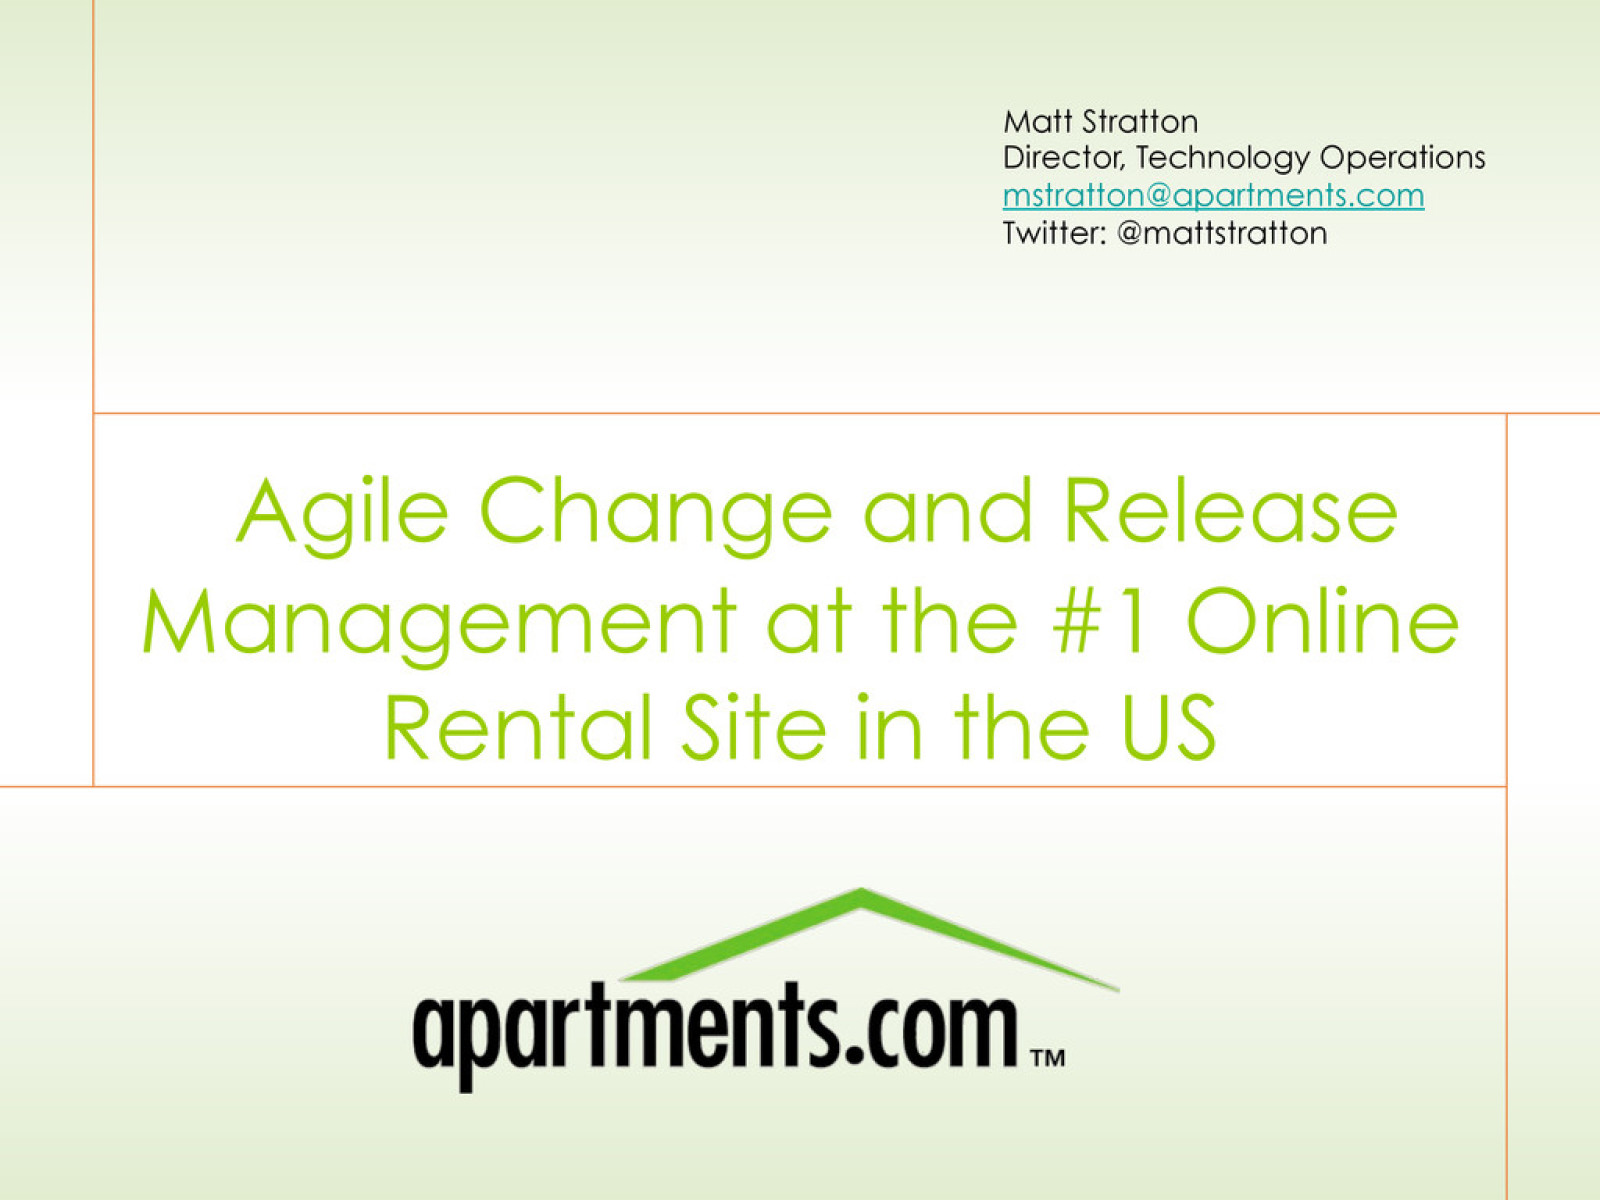 Agile Change and Release Management at the #1 Online Rental Site in the US